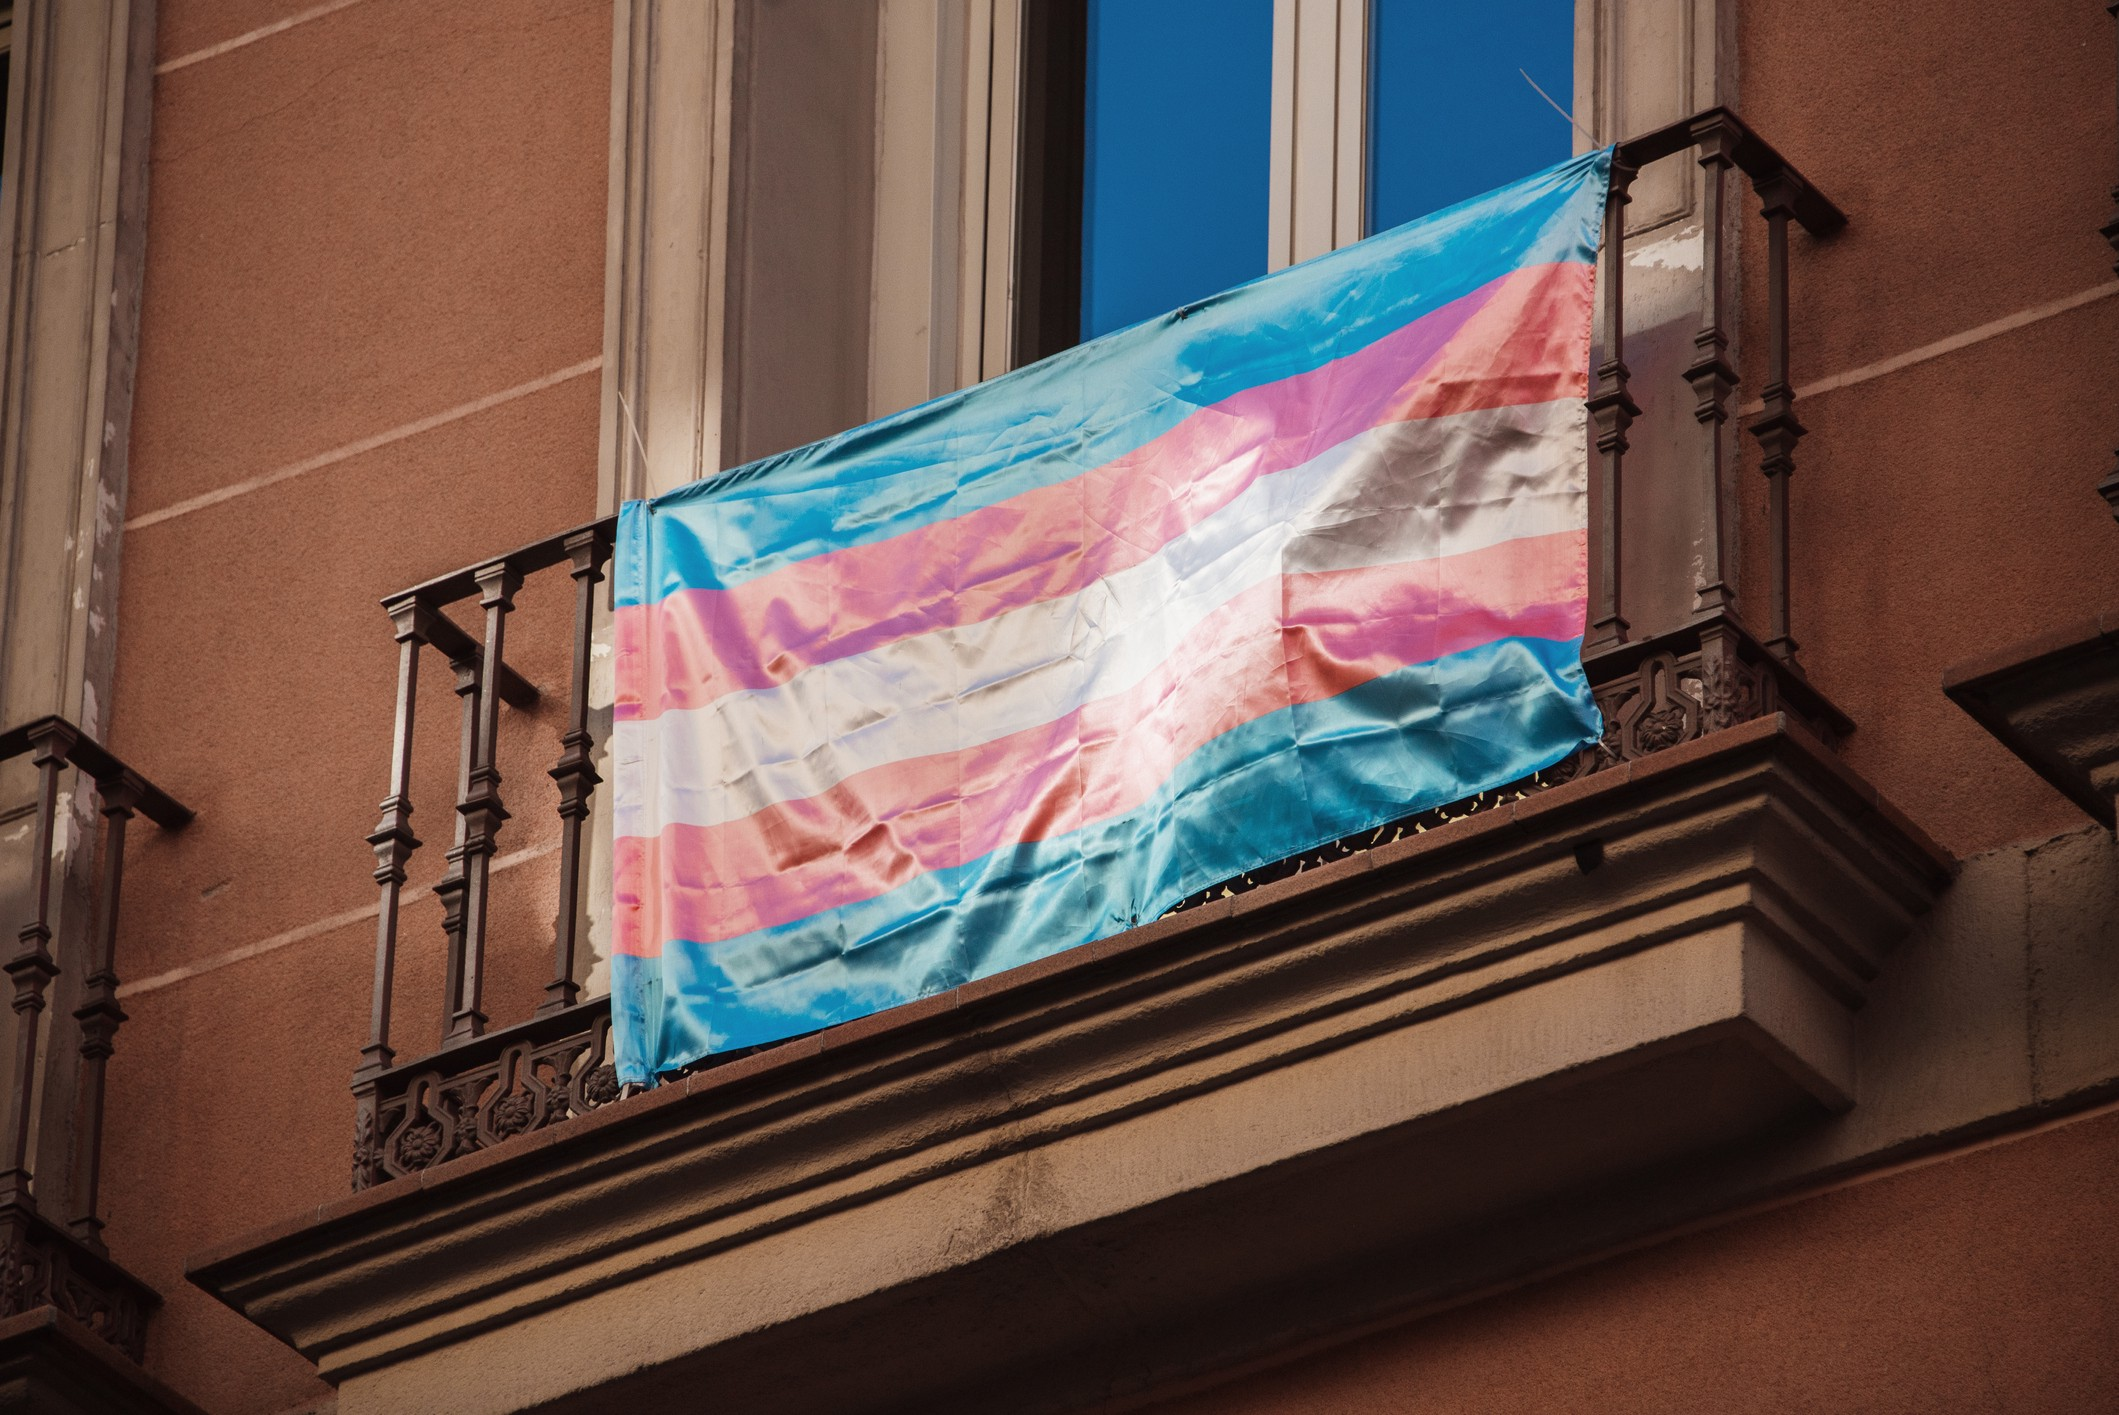 A photo of the trans flag hanging on a balcony.